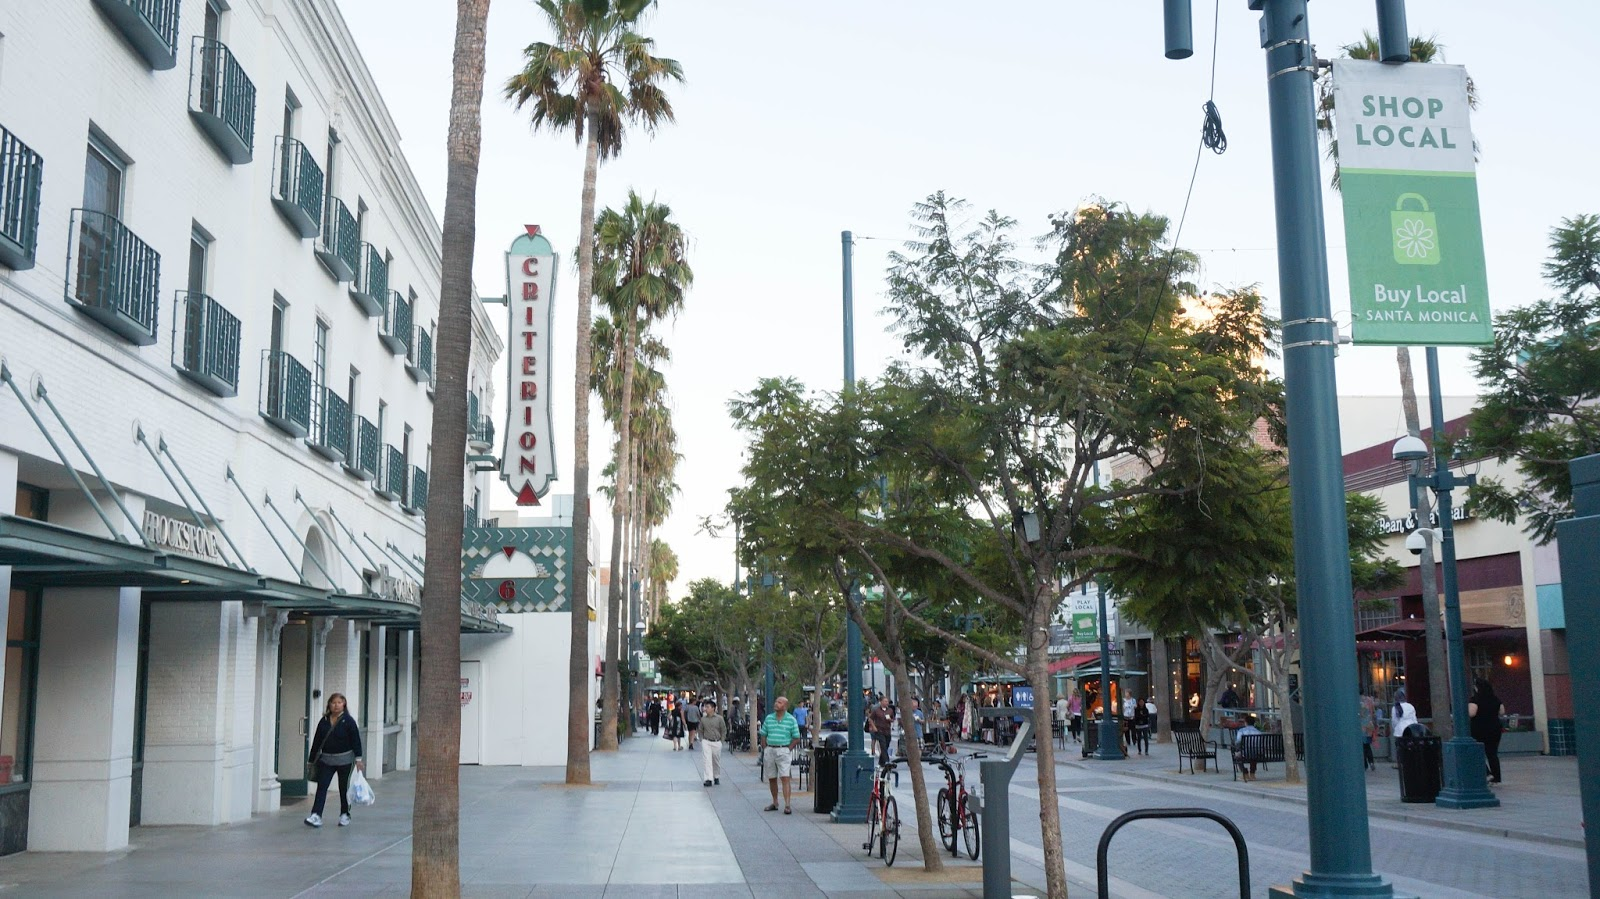 Banana Republic 3rd Street Promenade will be hosting an After 5 Event this Thursday, May 19 from 5pm to 9pm. Join us for food, music, mingling, and 25% off purchases of $ or more.